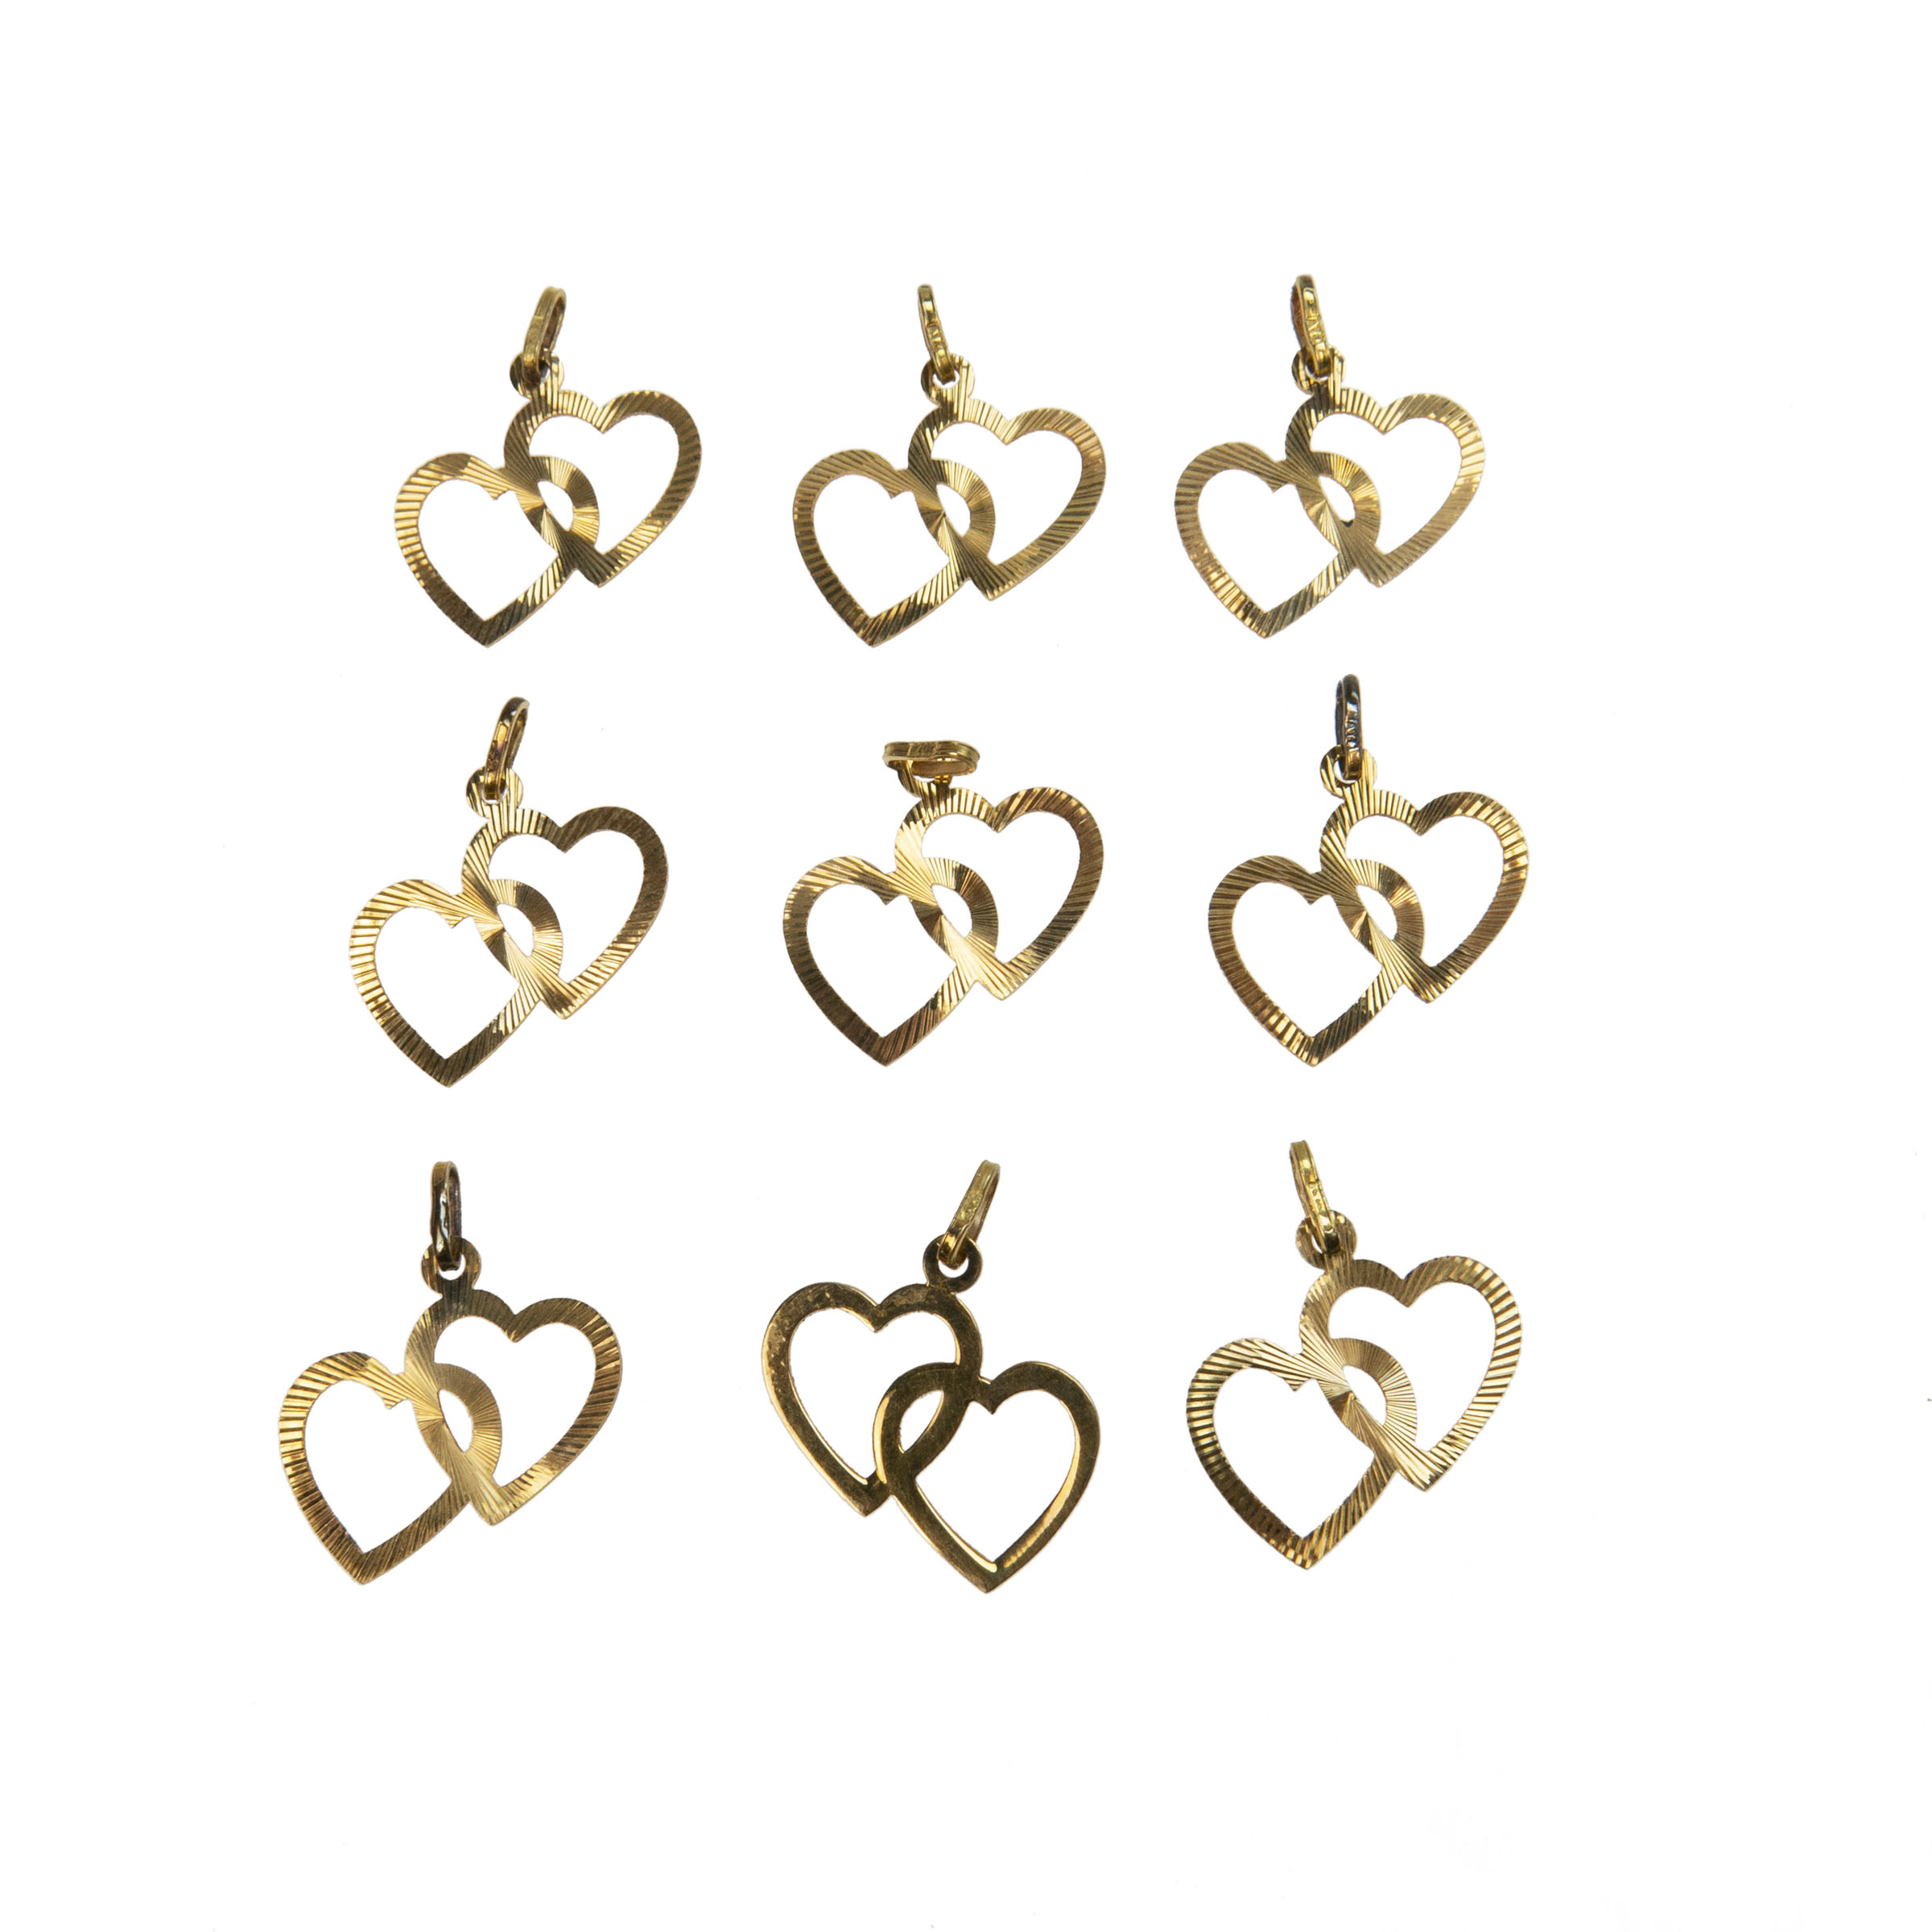 9 X 18K Yellow Gold Charms